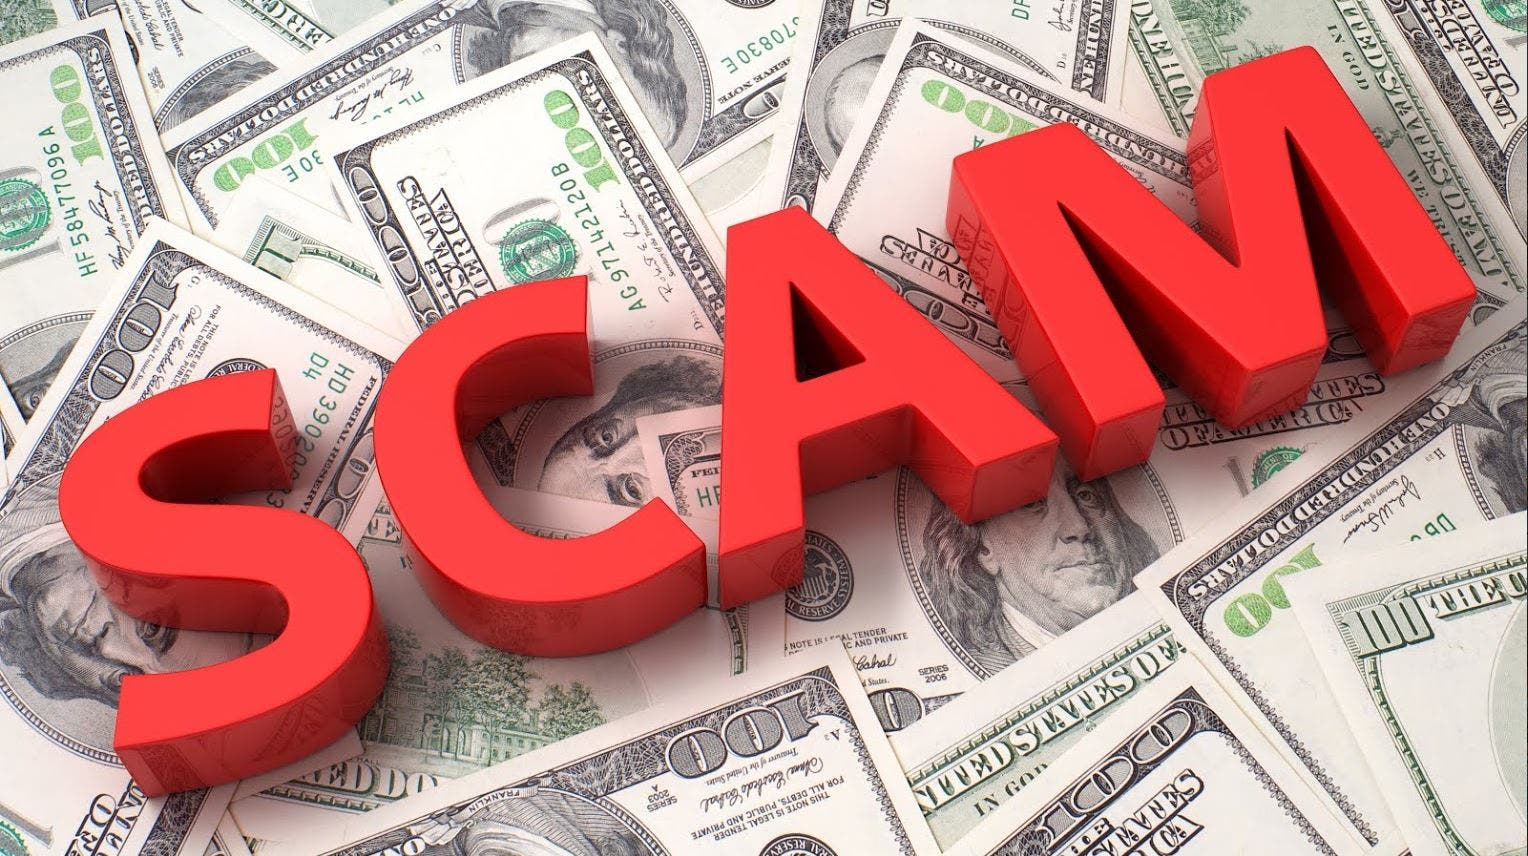 Police Warn of Publishers Clearing House Scam | Annapolis